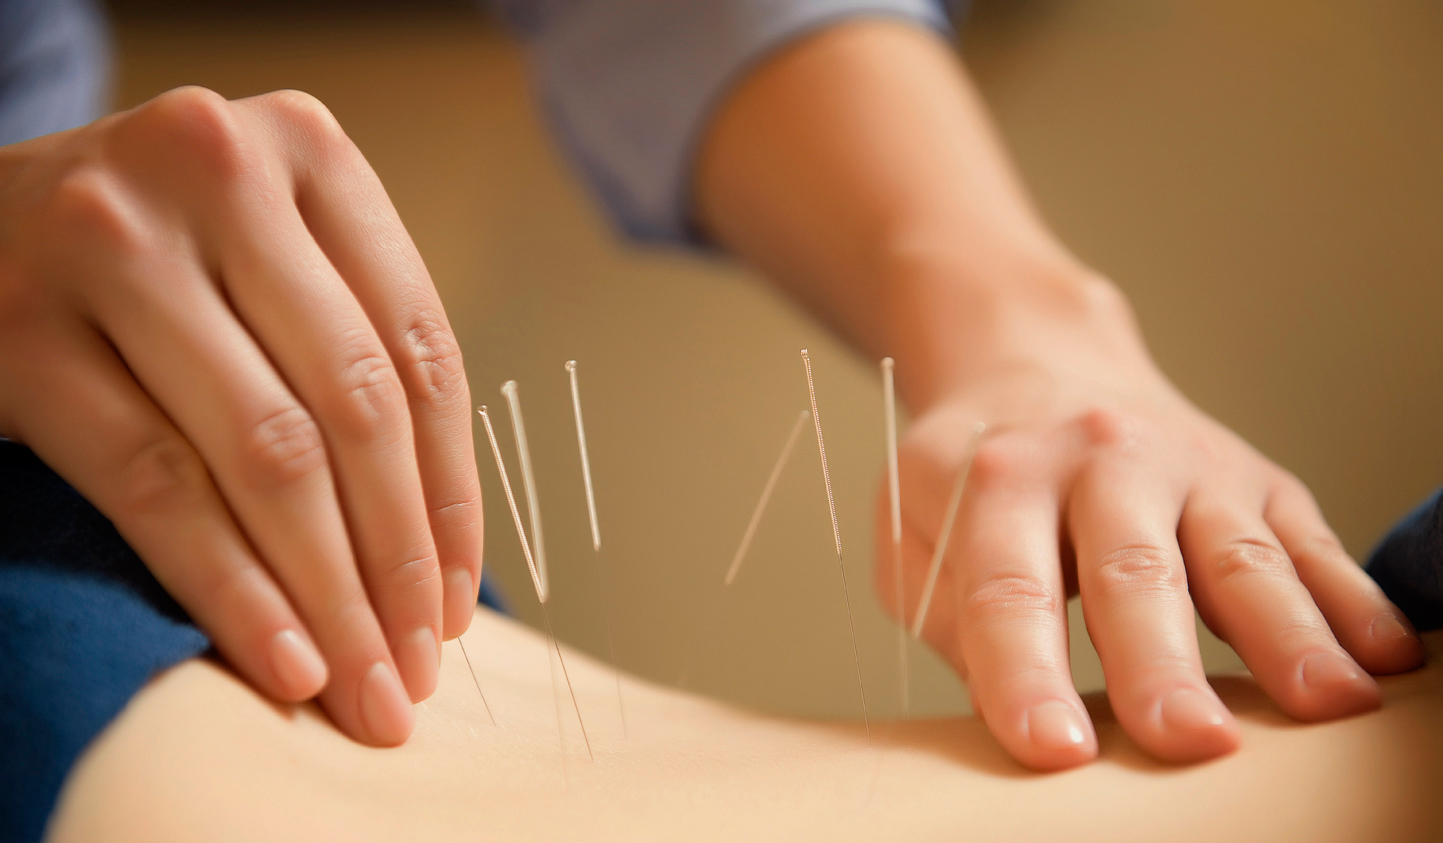 an analysis of the benefits and dangers of acupuncture a type of alternative medicine Acupuncture for alzheimer's the mechanism for acupuncture's putative effects in ad treatment has acupuncture alternative medicine arthritis ayurveda bias.